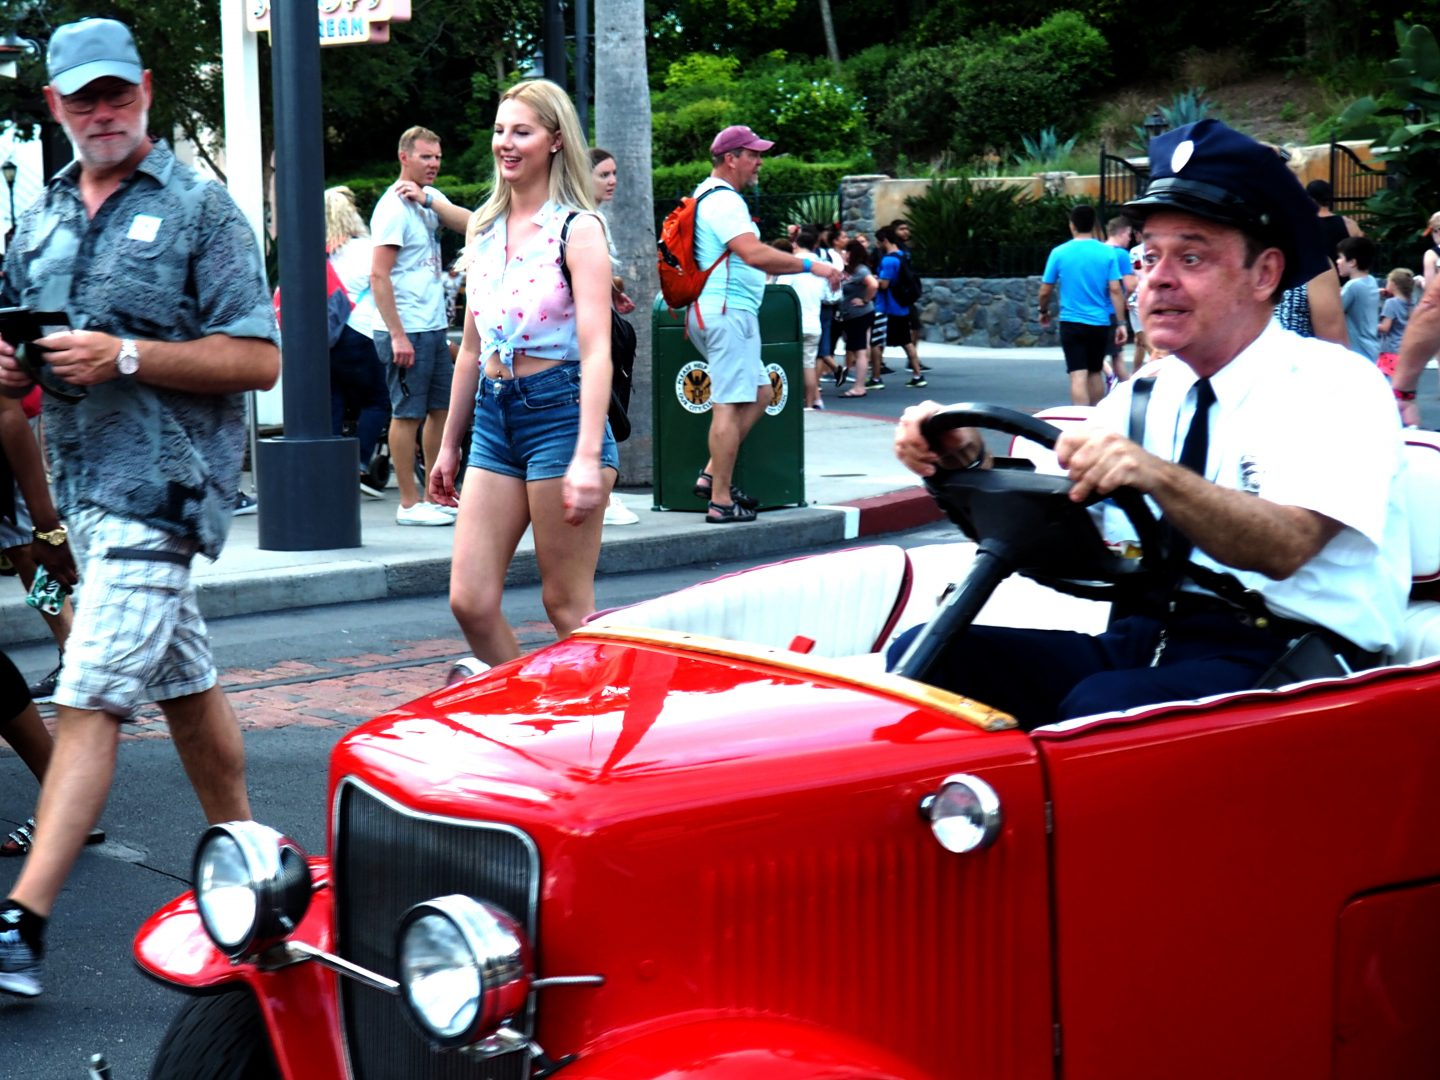 is bringing a car to walt disney world a good idea?